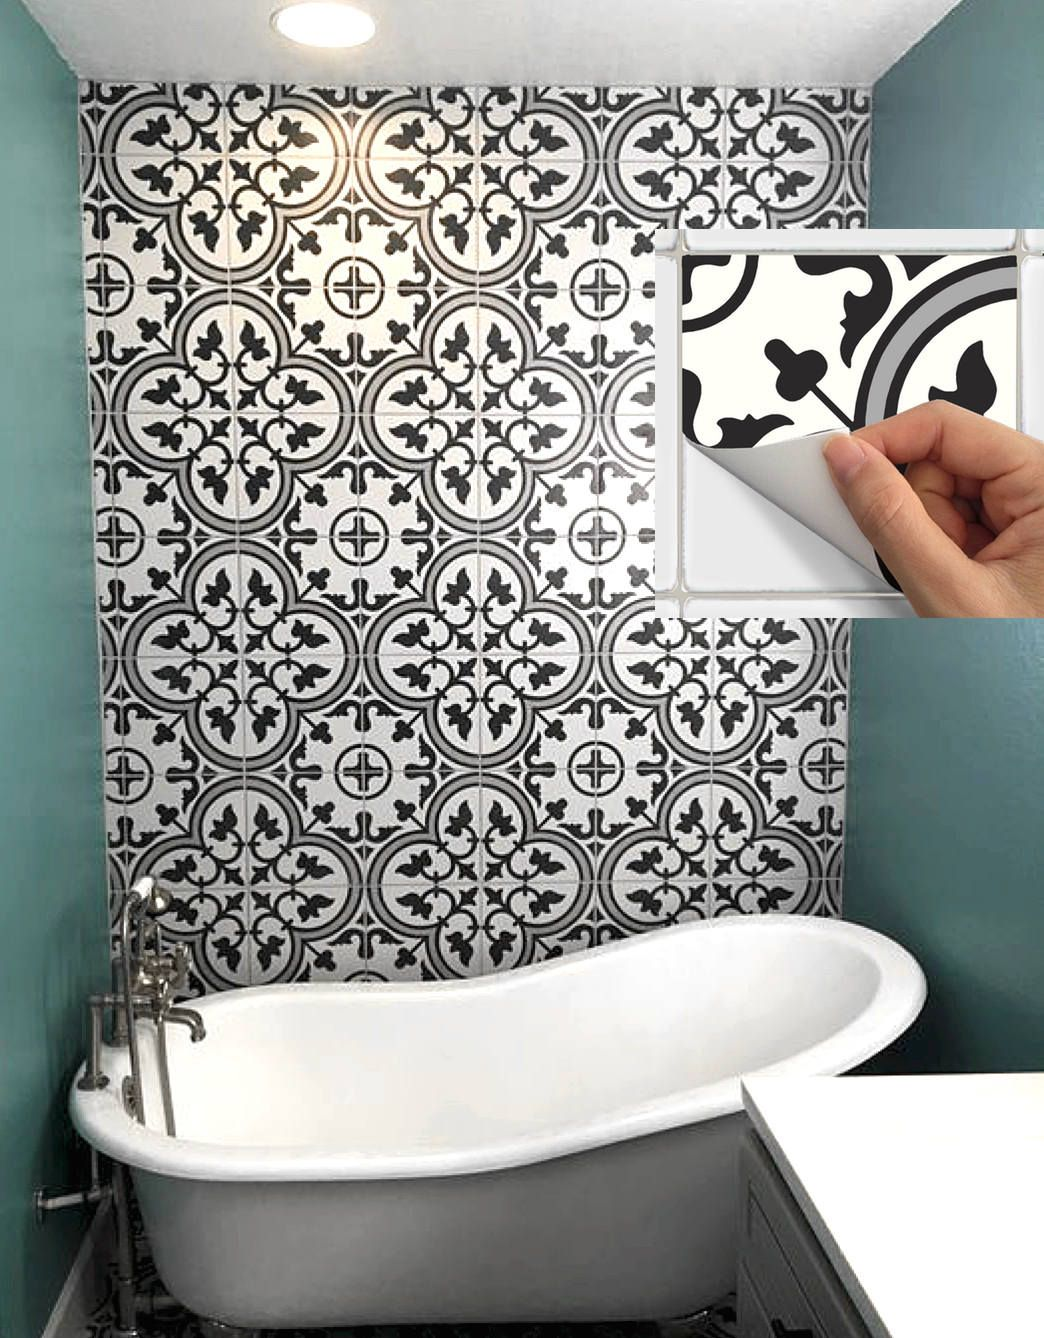 Tile Stickers Tile Picture Tile Stickers Sticker Bathroom Bath Kitchen Decoration